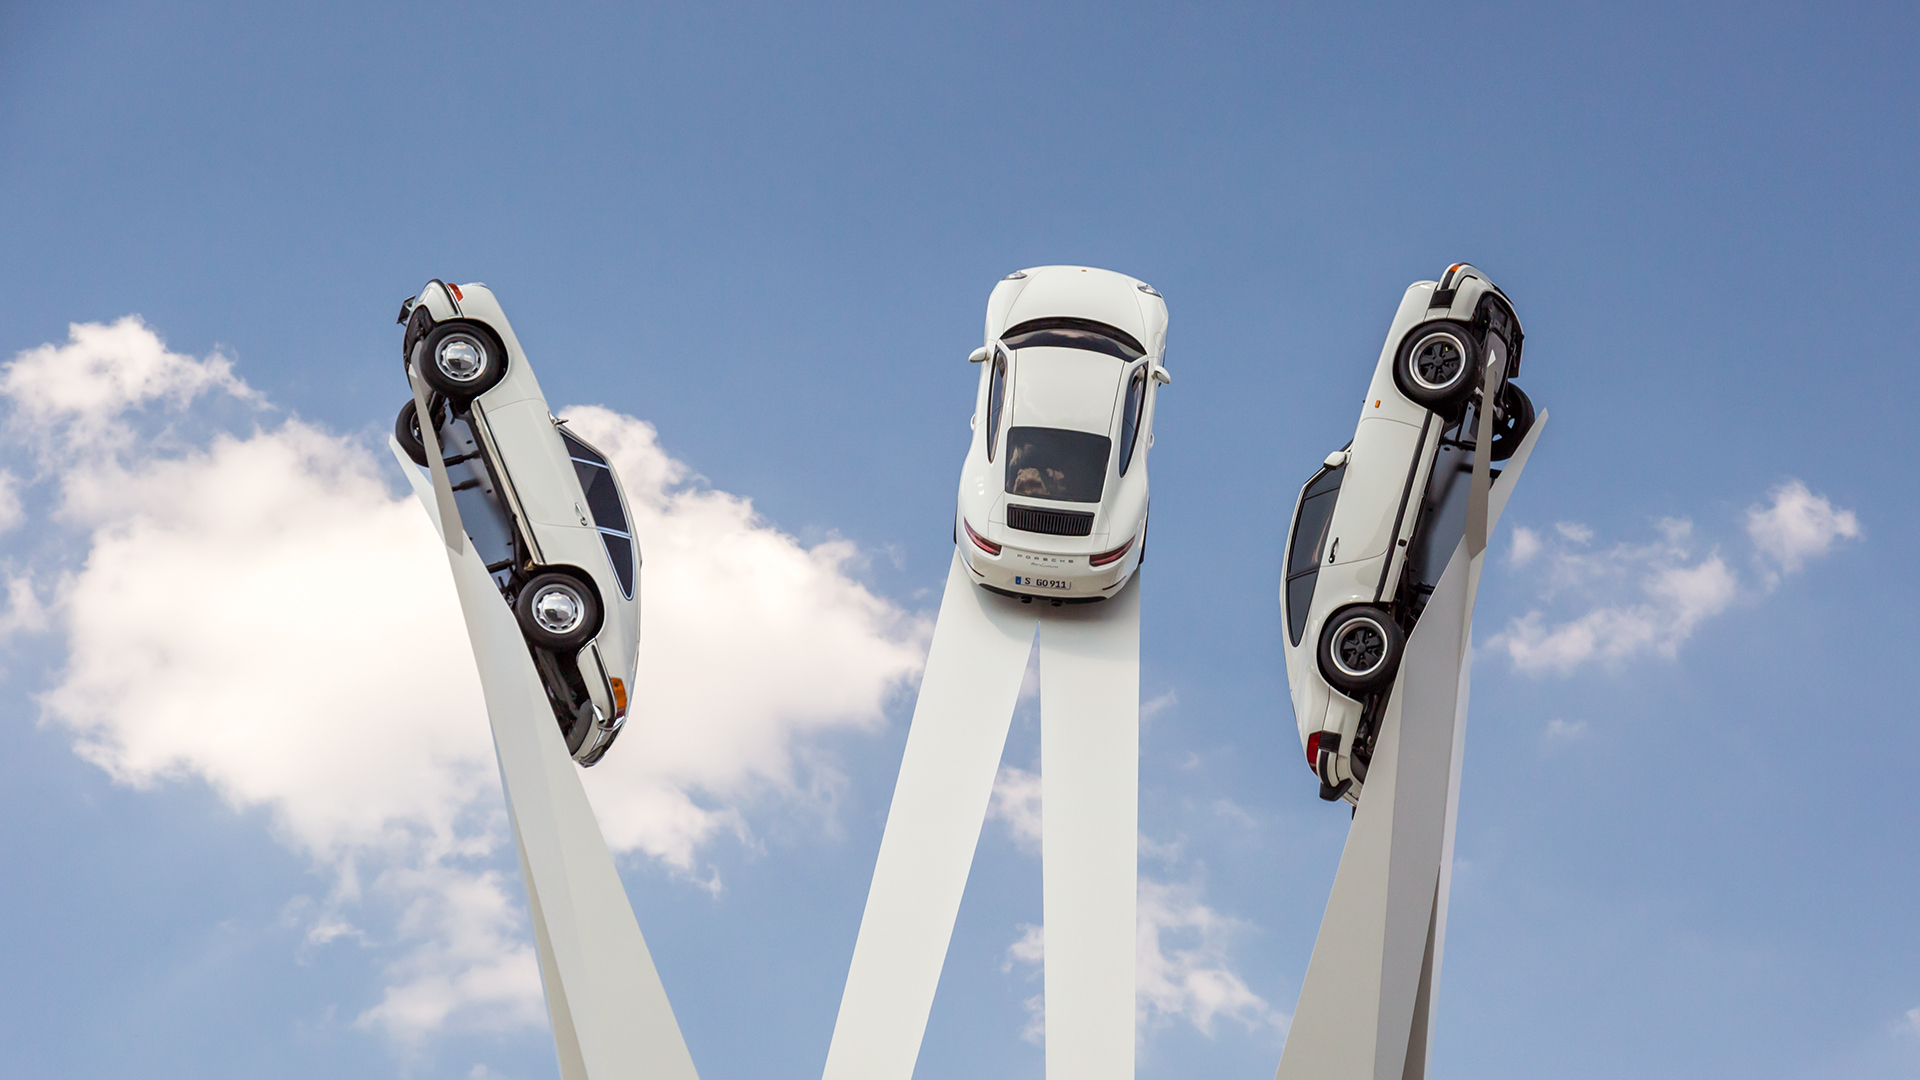 Porsche Unveils Goodwood Like Sculpture Of 911s In Zuffenhausen Autoevolution